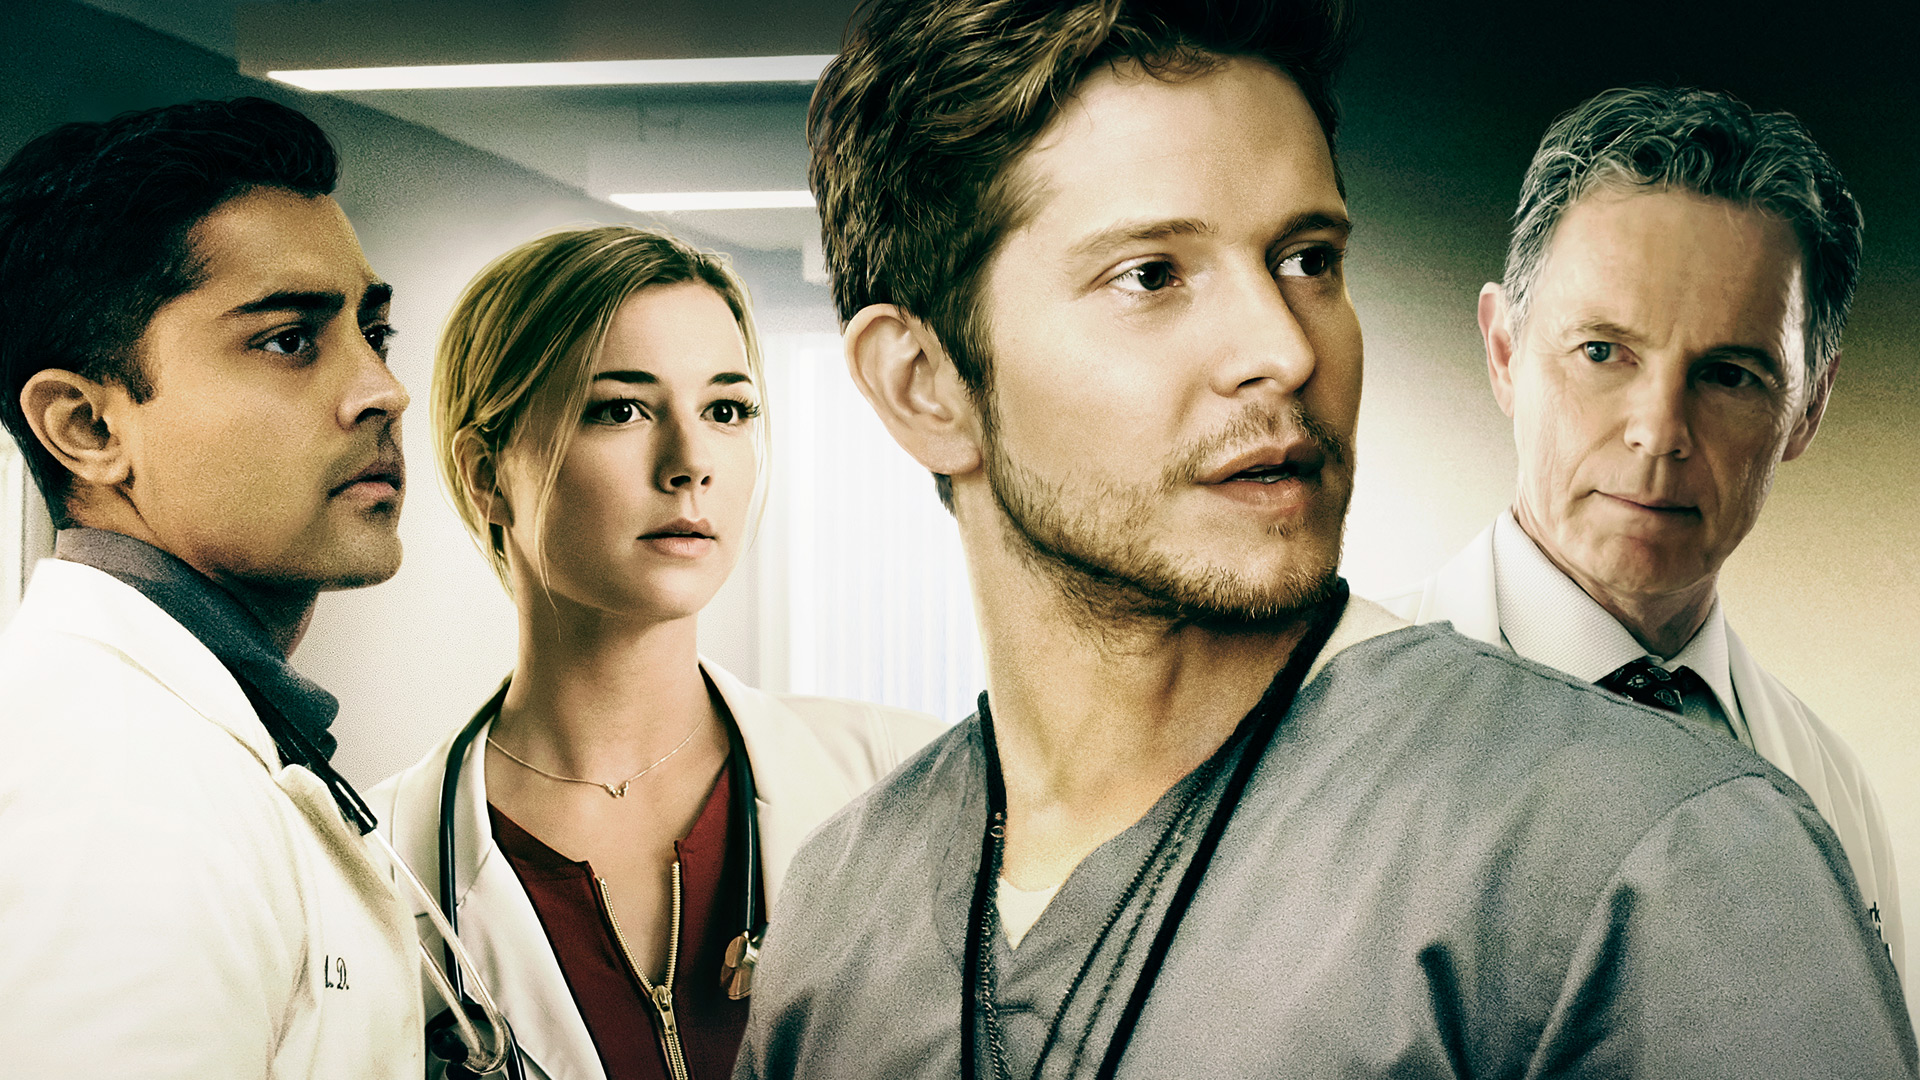 The Resident (TV Series 2018 - Now)